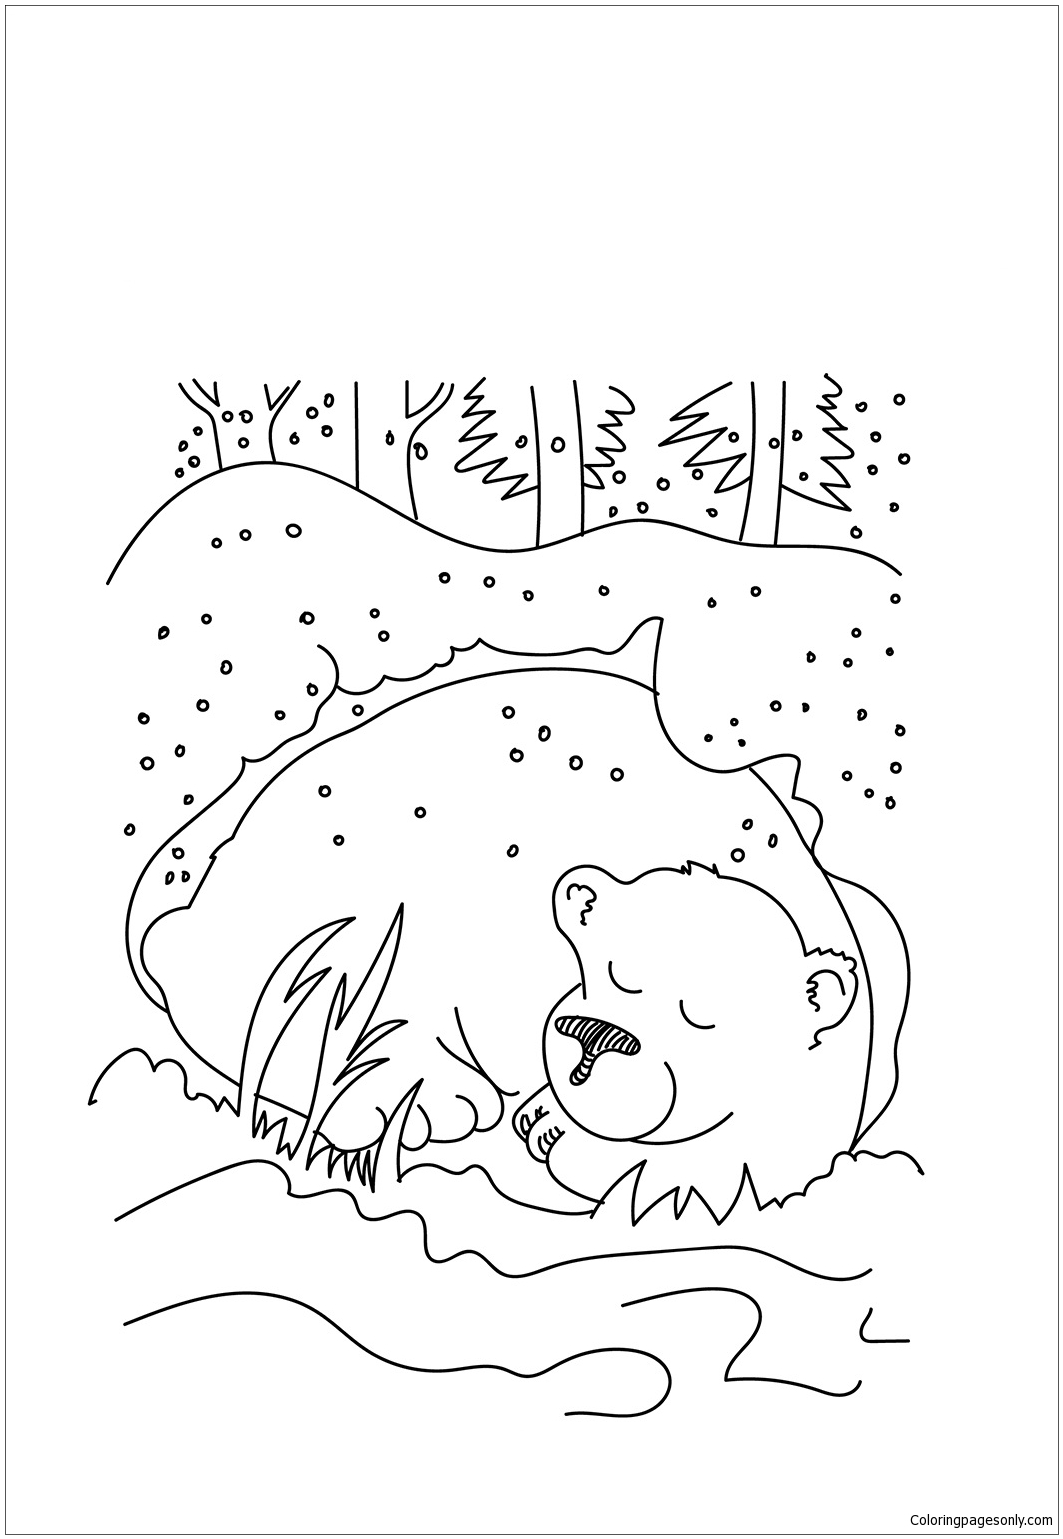 Bear Hibernating Coloring Page